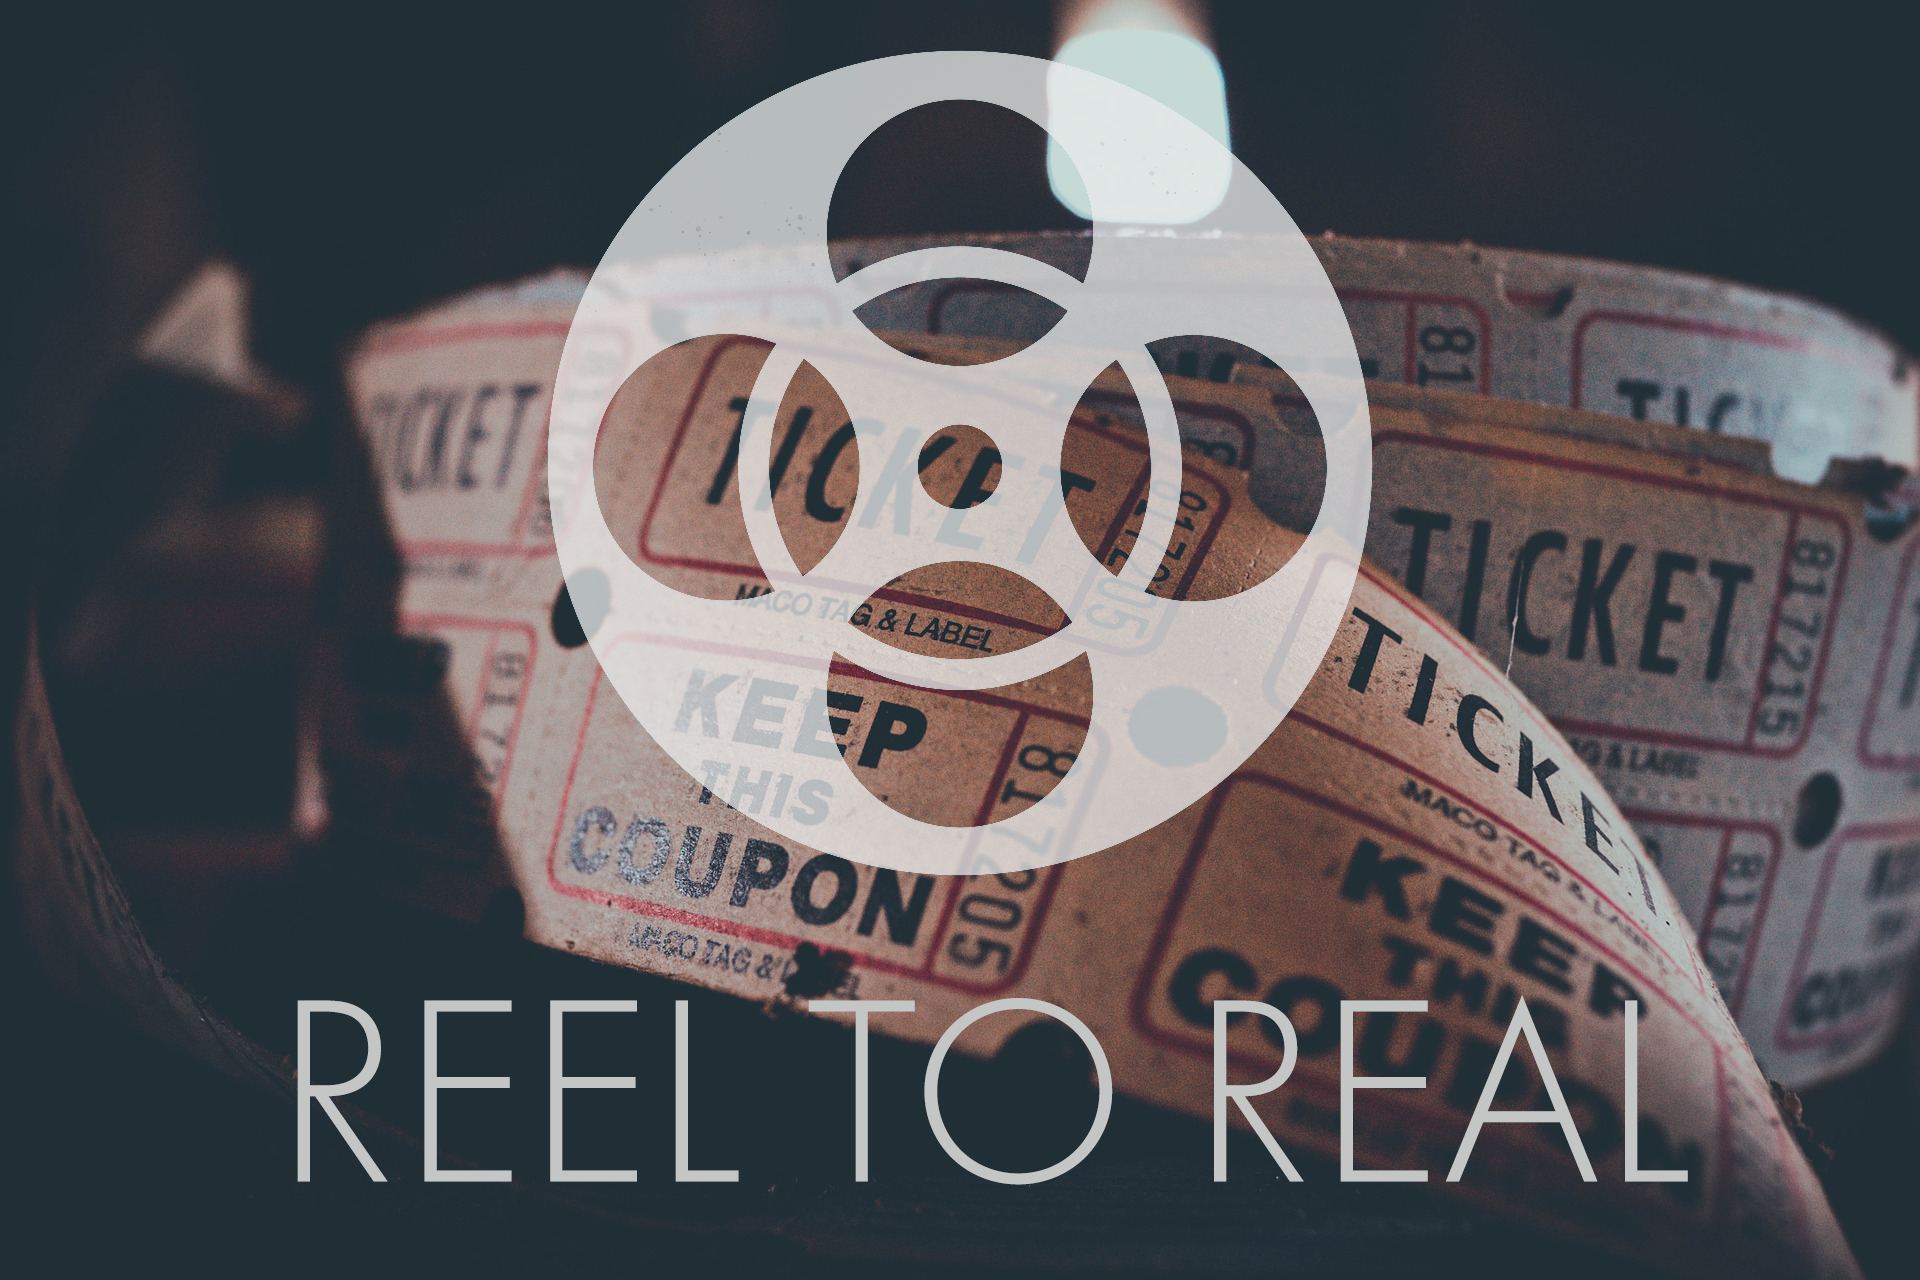 Reel to Real  is a film discussion group that offers a social opportunity for a mixed group of community members of all ages to enjoy and appreciate the art medium of film together.